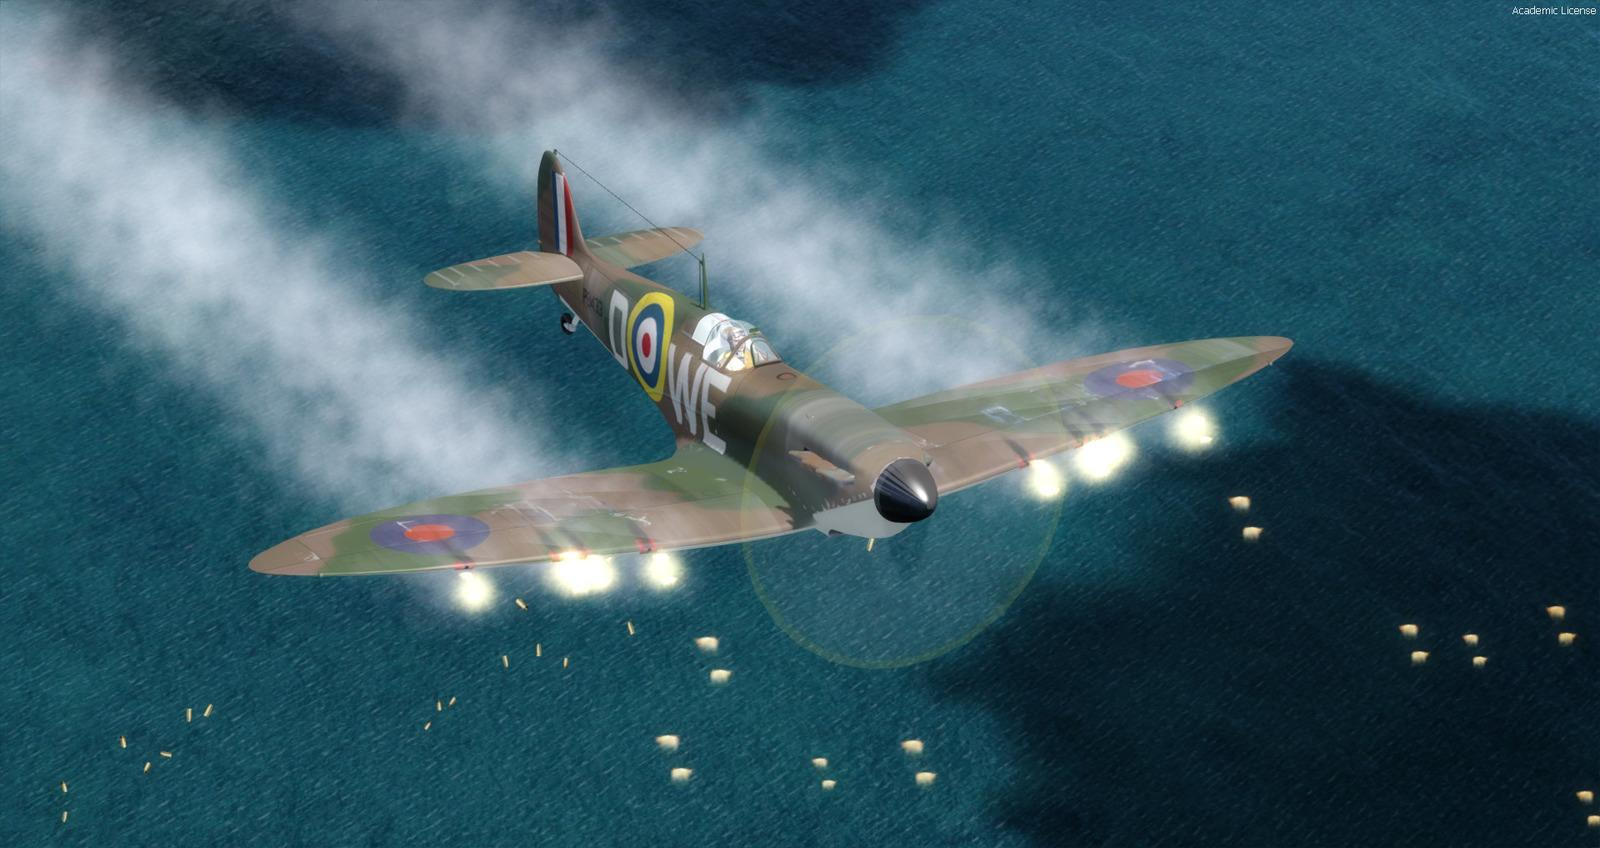 Fsx sdk 1a download